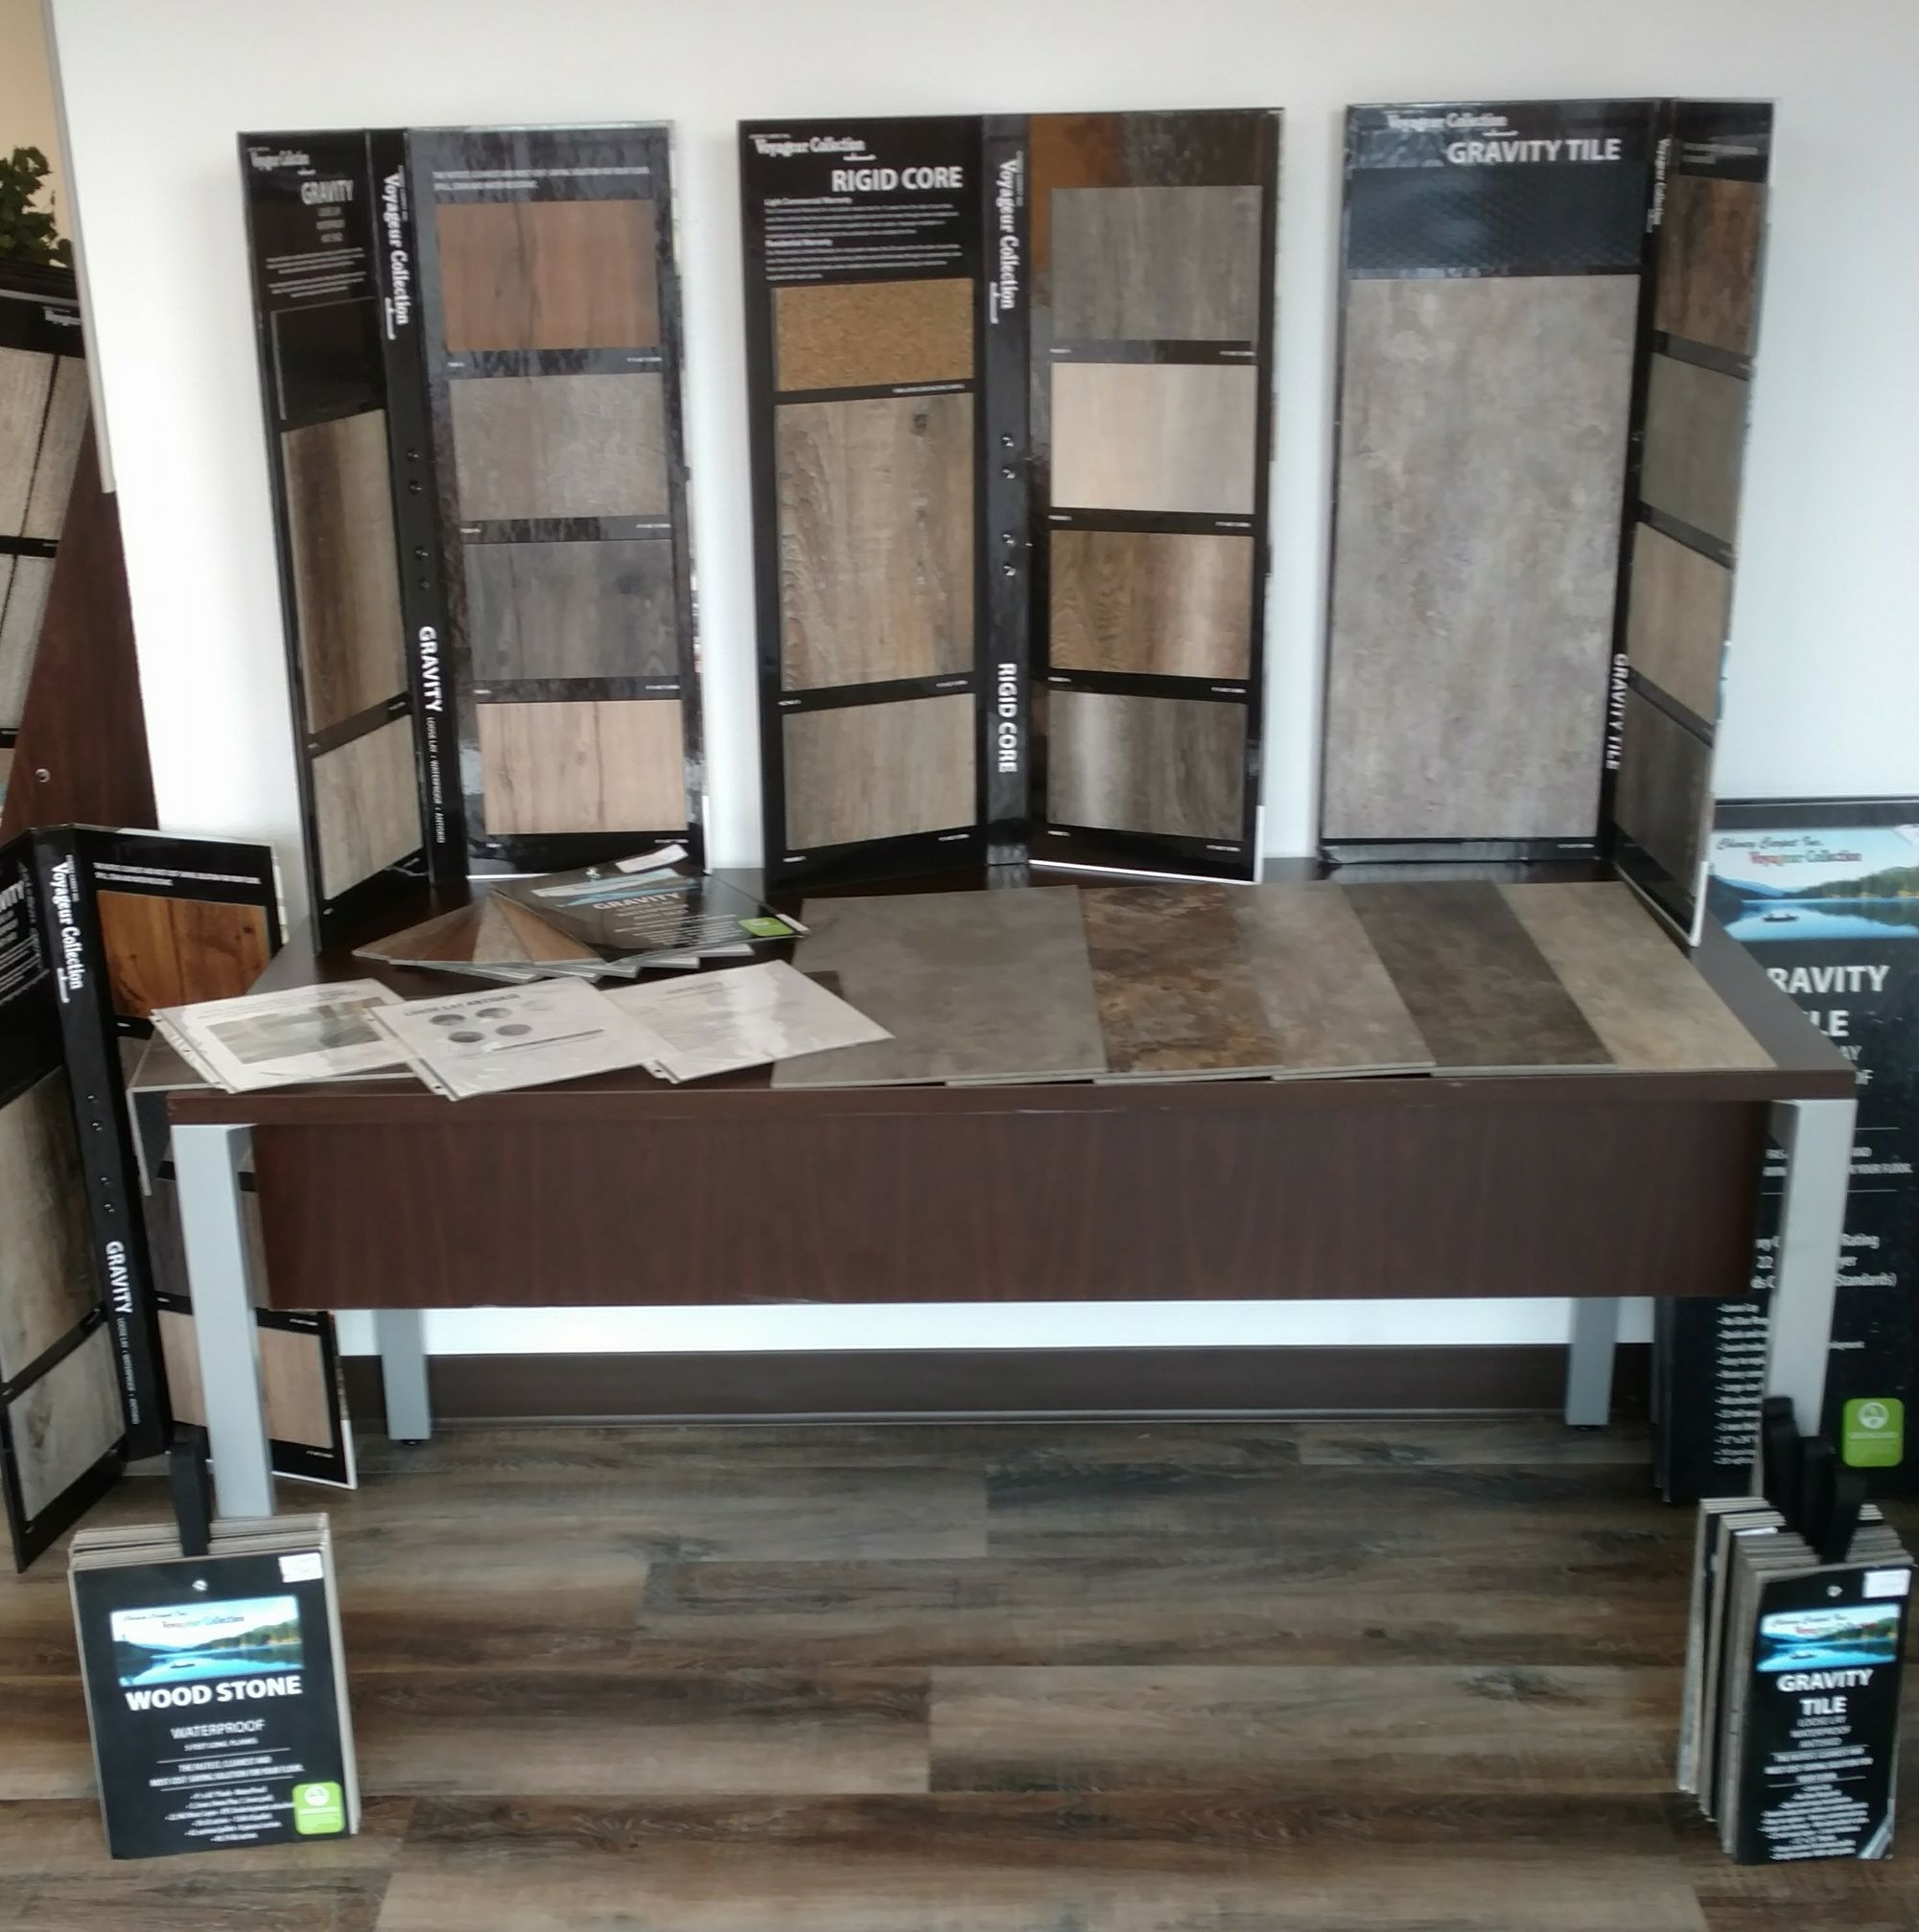 Family Owned & Operated - Here at Feist Flooring we are your one-stop shop for buying and installing your flooring needs. With 80 years combined experience, we have a vast knowledge of the industry. We have a variety of different flooring options for you to choose from and are with you from start to finish in your flooring projects.Learn More